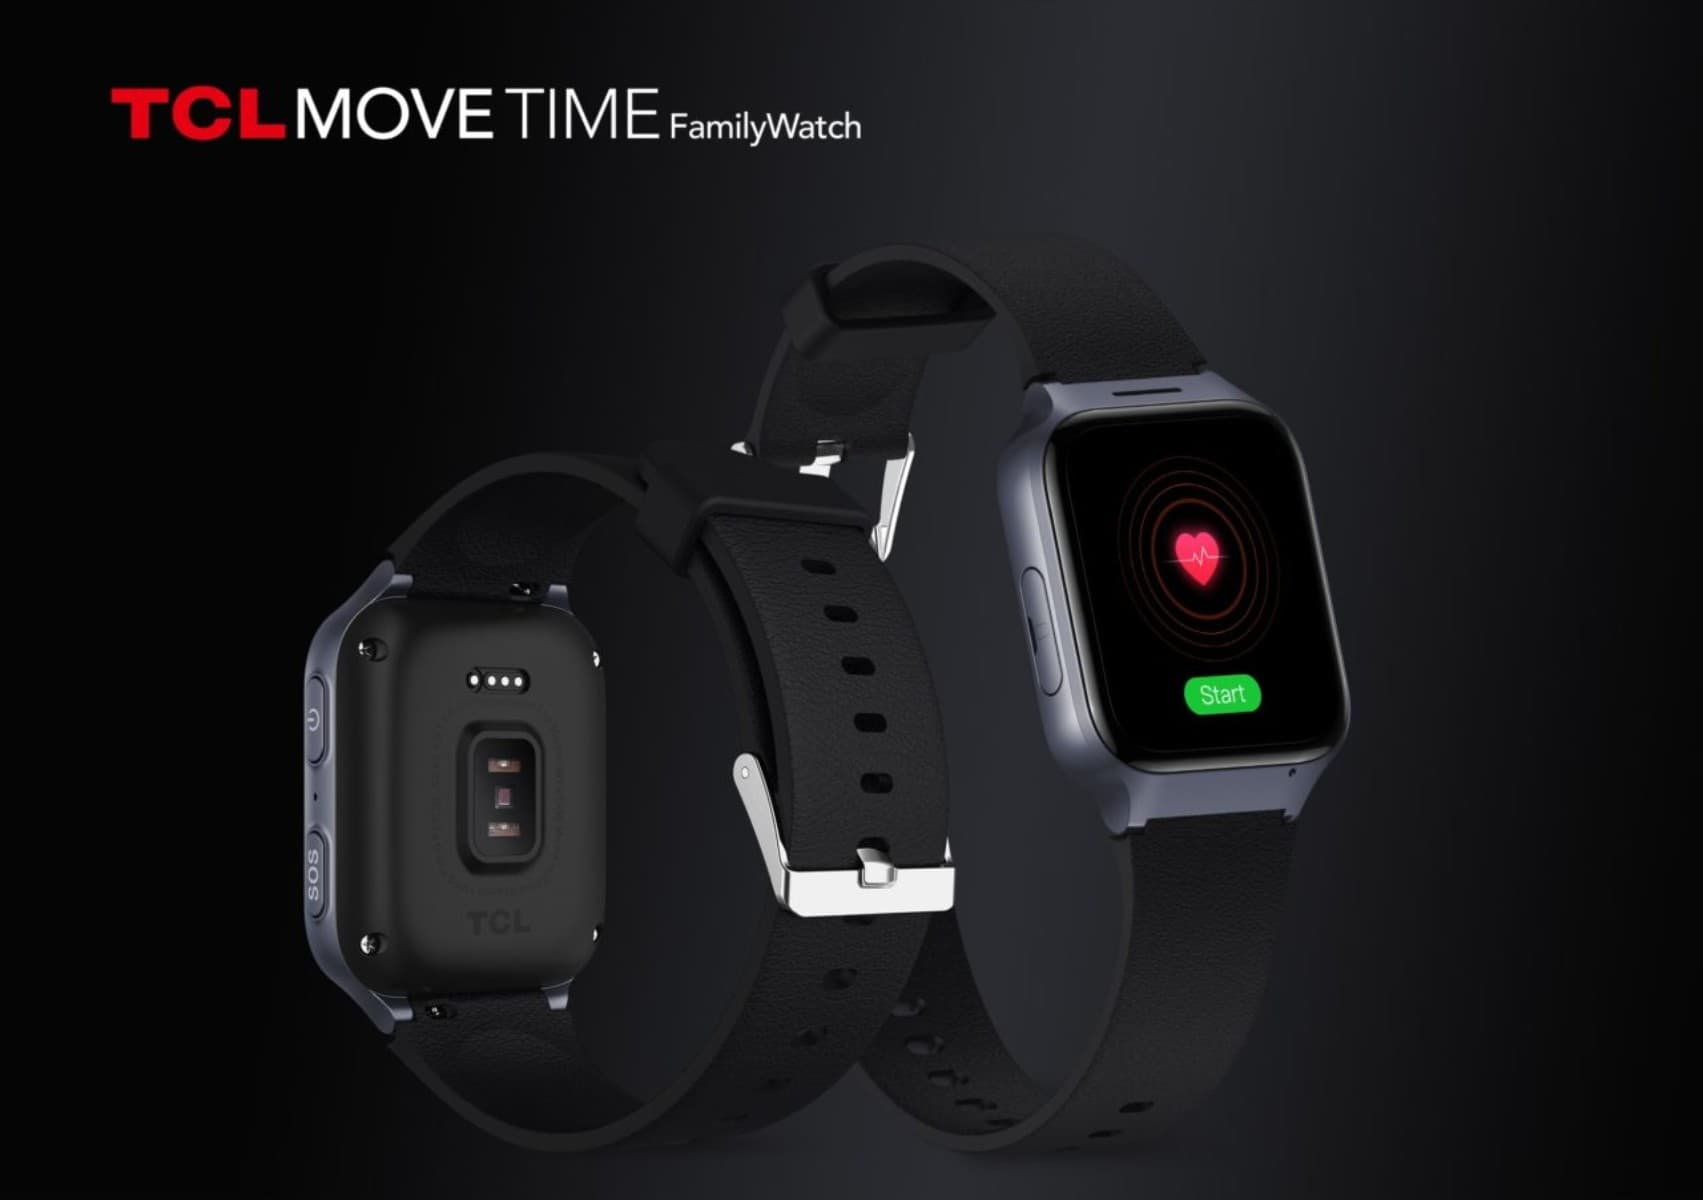 TCL MoveTime Family Watch 1 1280x902 1